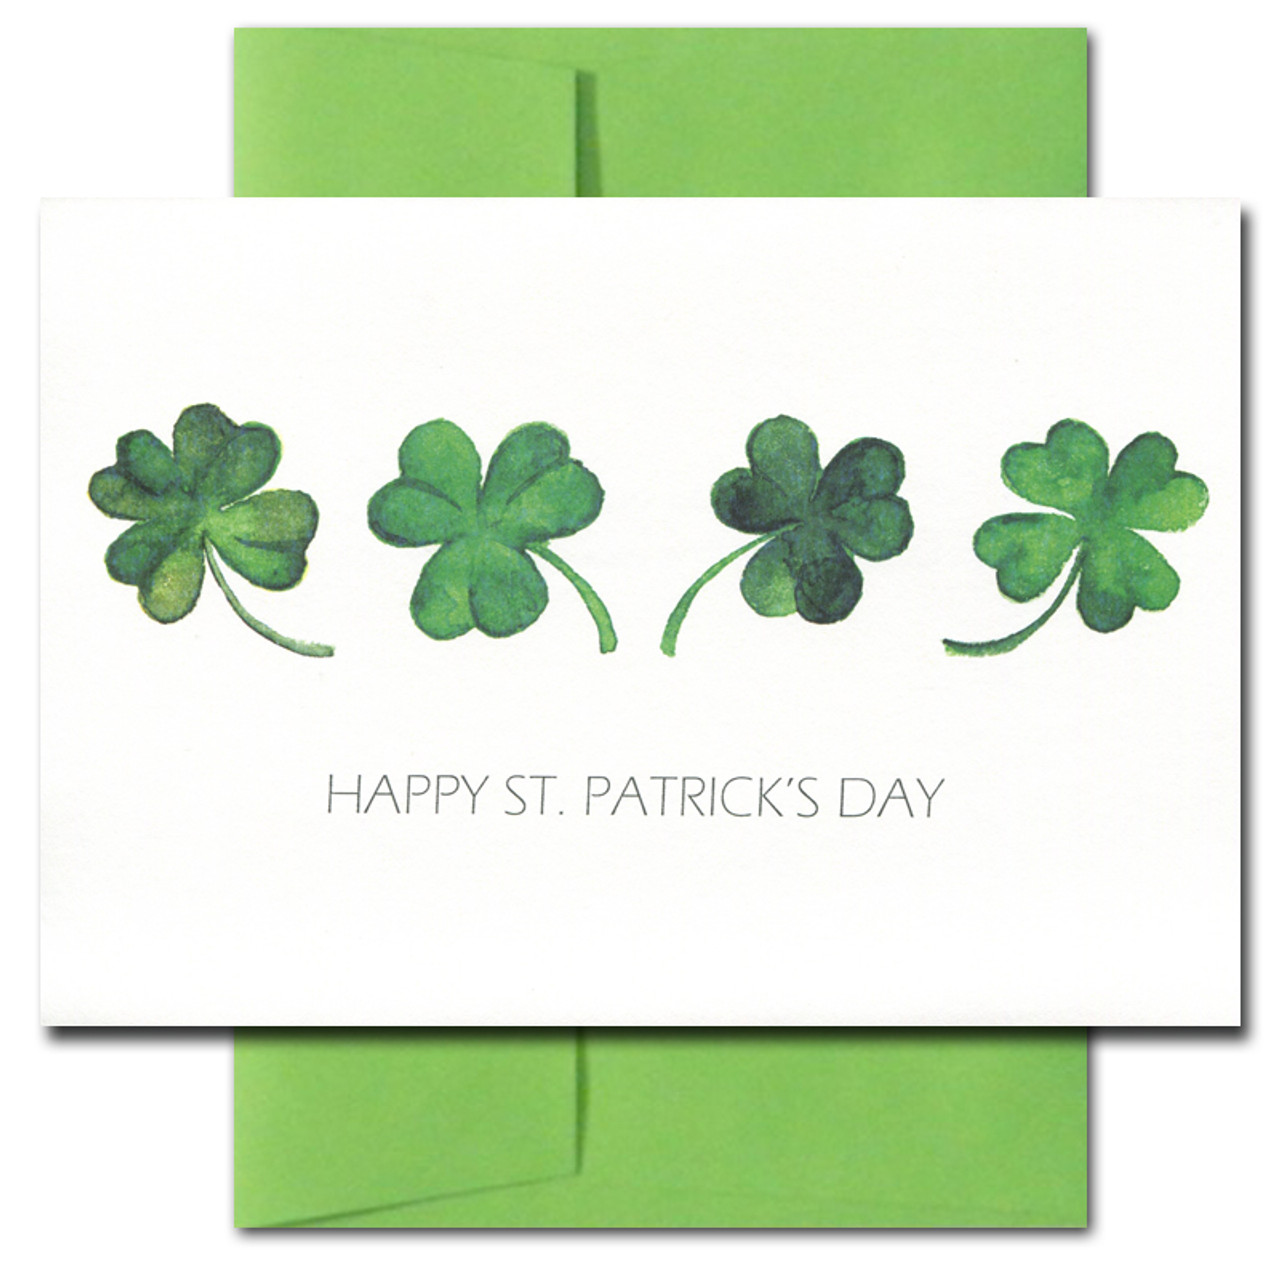 Cover of Saint Patrick's Day card featuring hand-painted shamrocks